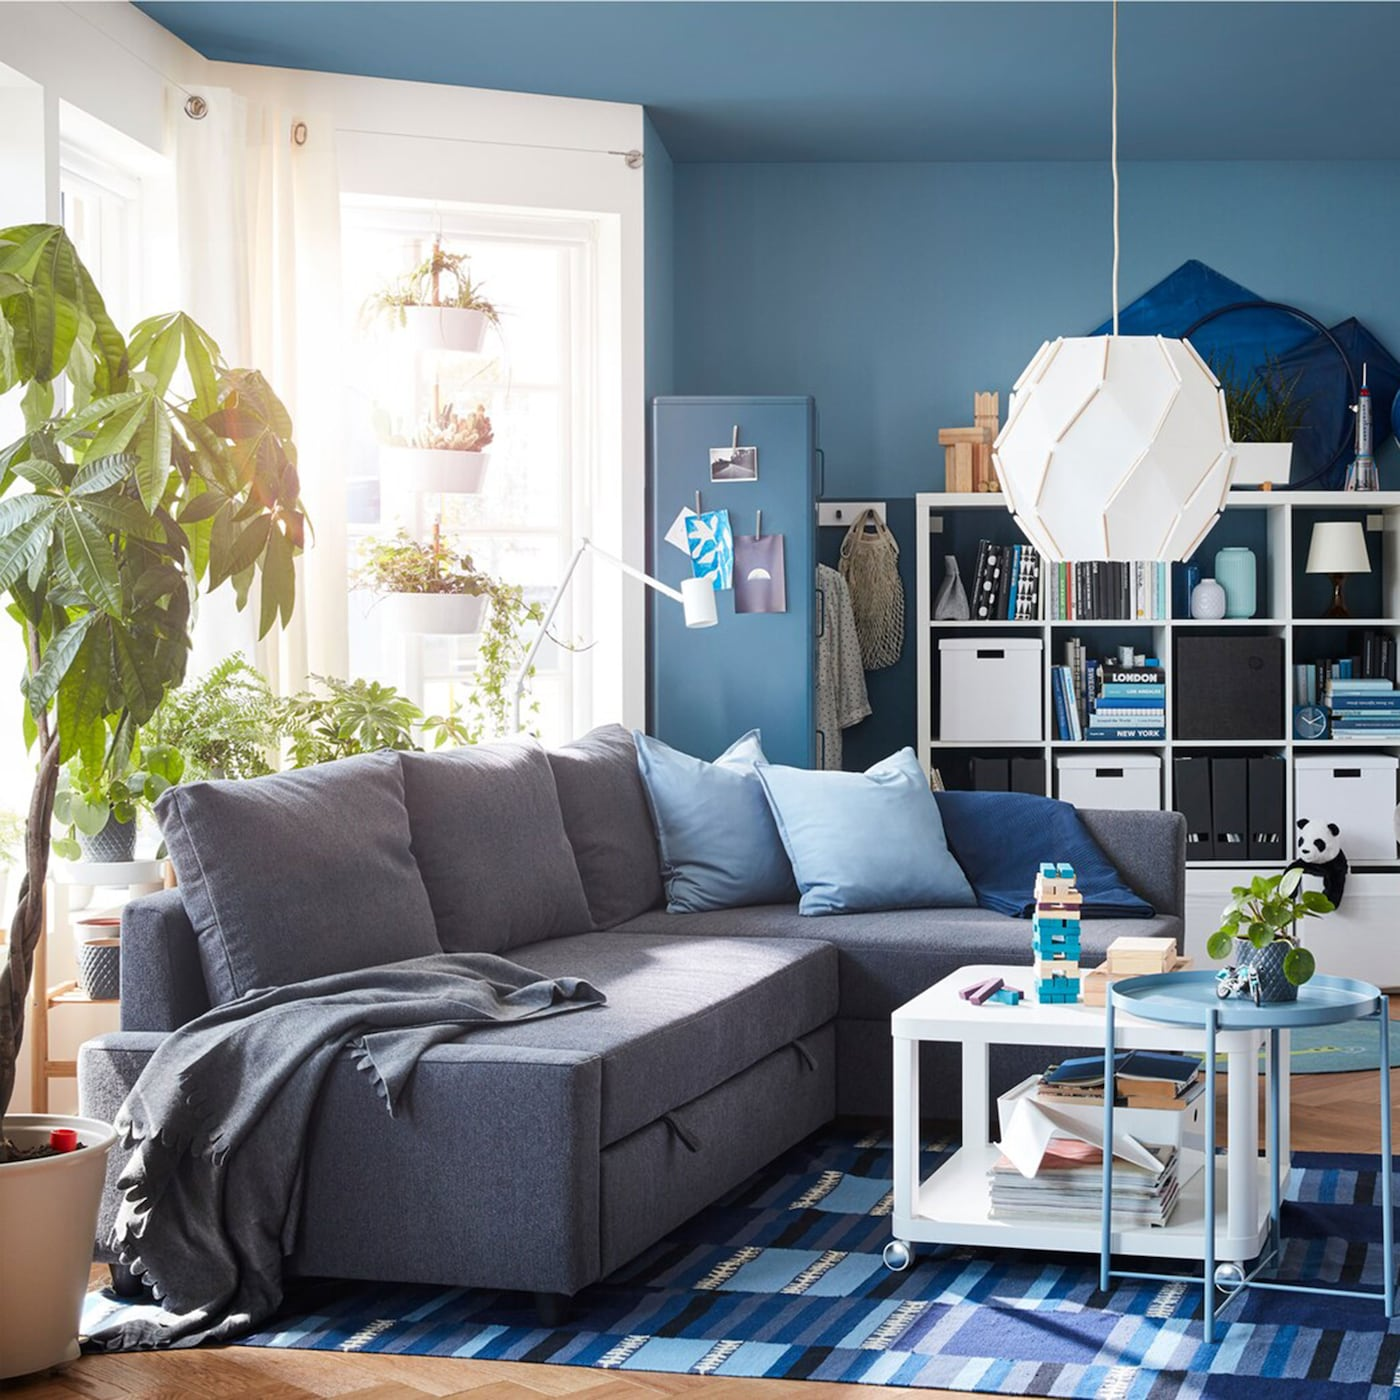 A 24-hour living room - IKEA